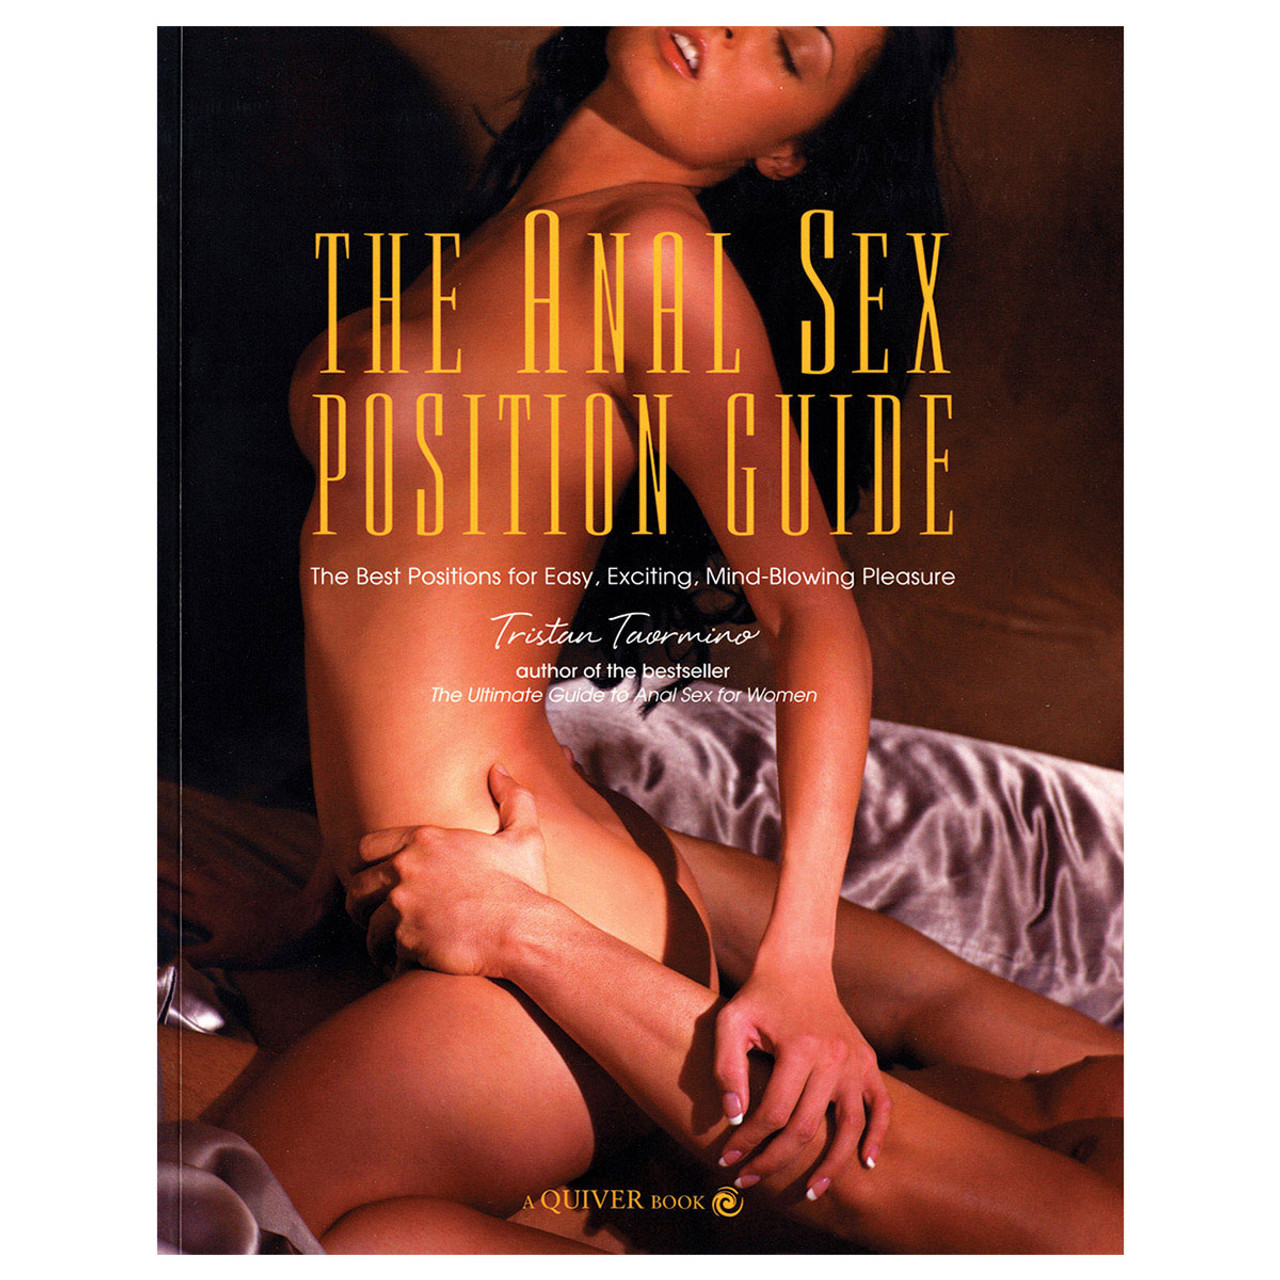 Nal sex position guide join. was